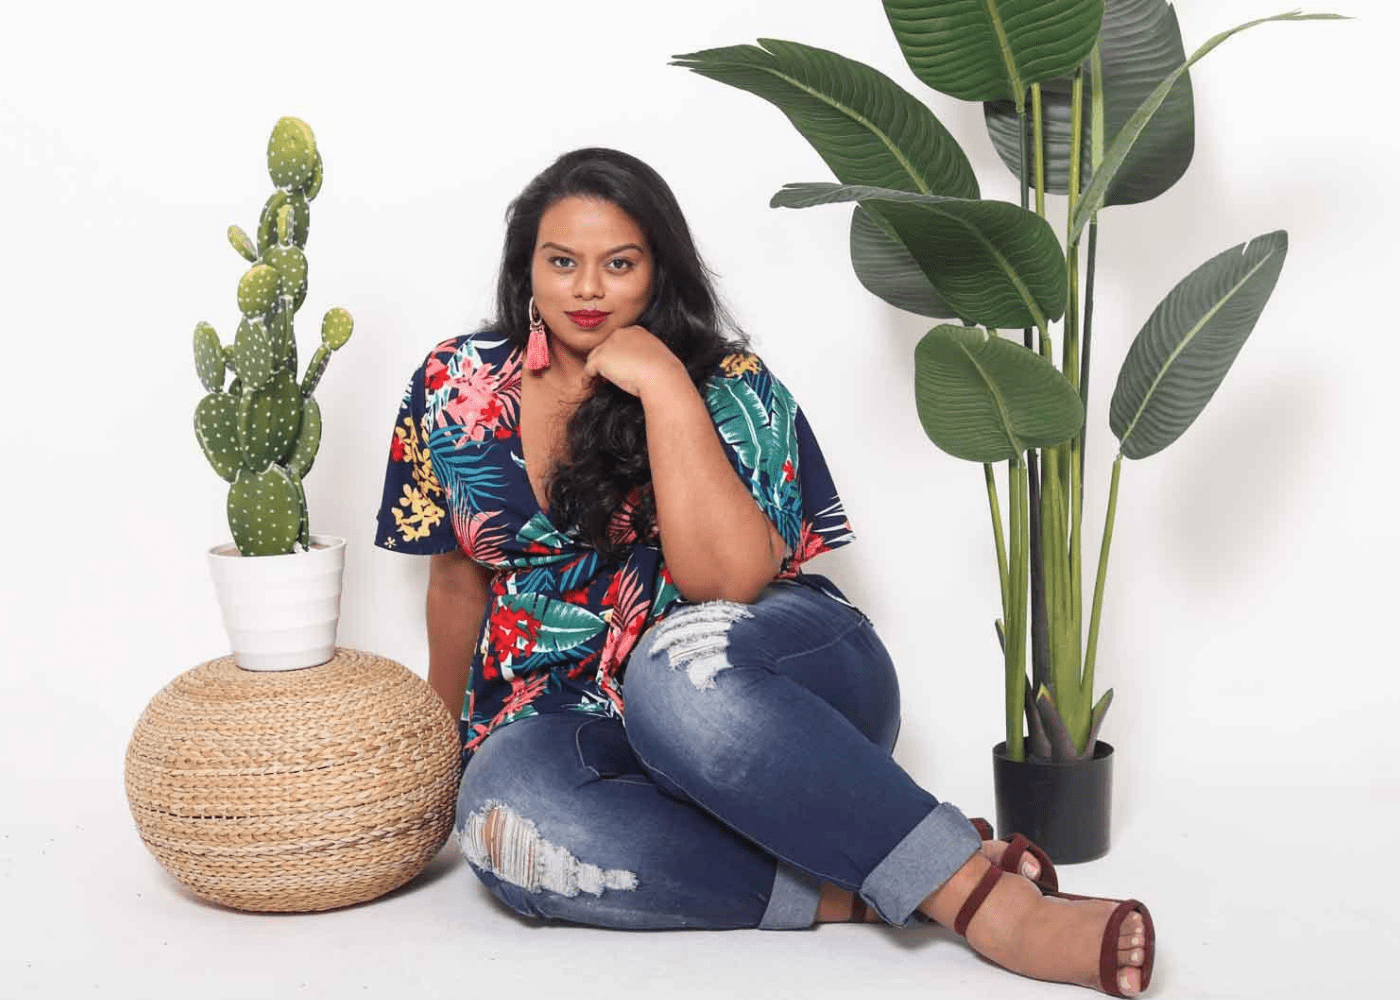 Slay the fashion game with stylish plus-size clothing for curvy women